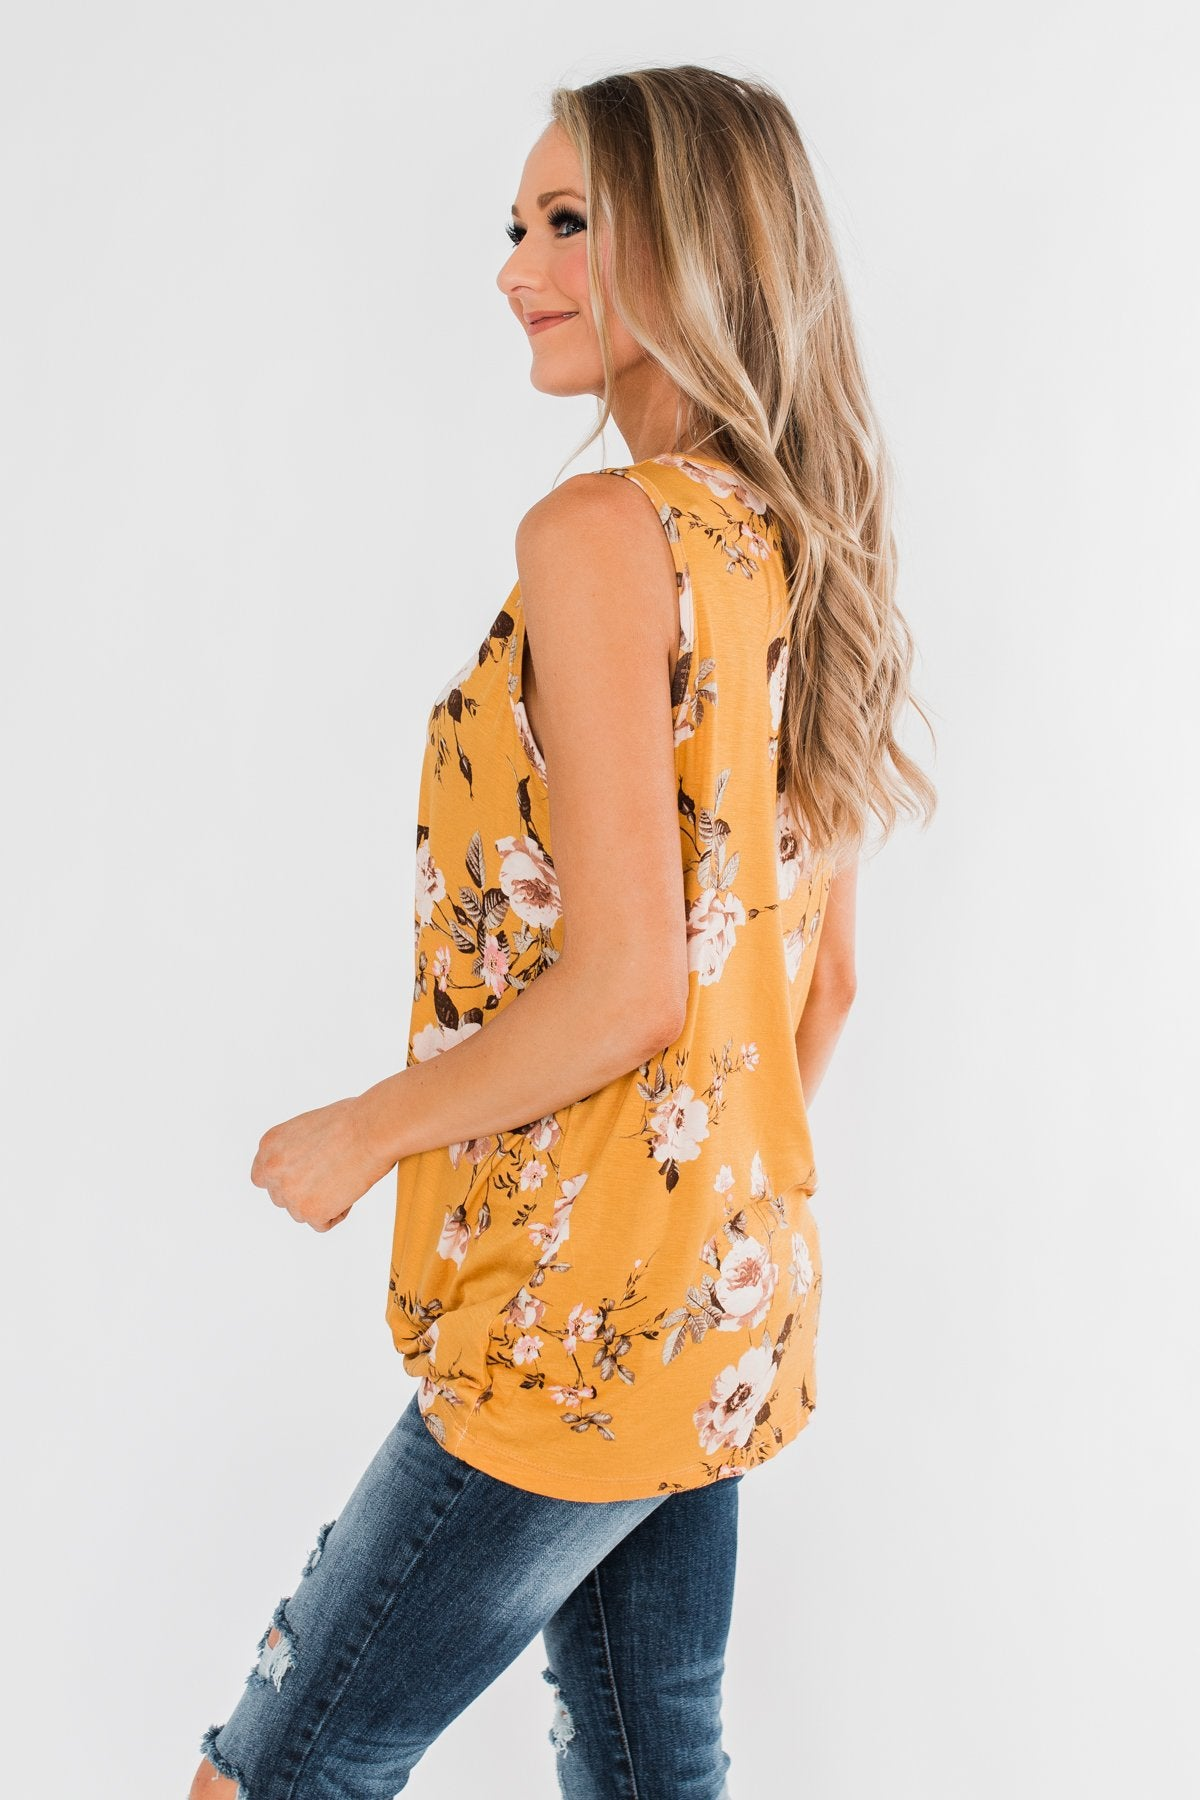 On Repeat Floral Criss Cross Tank Top- Mustard